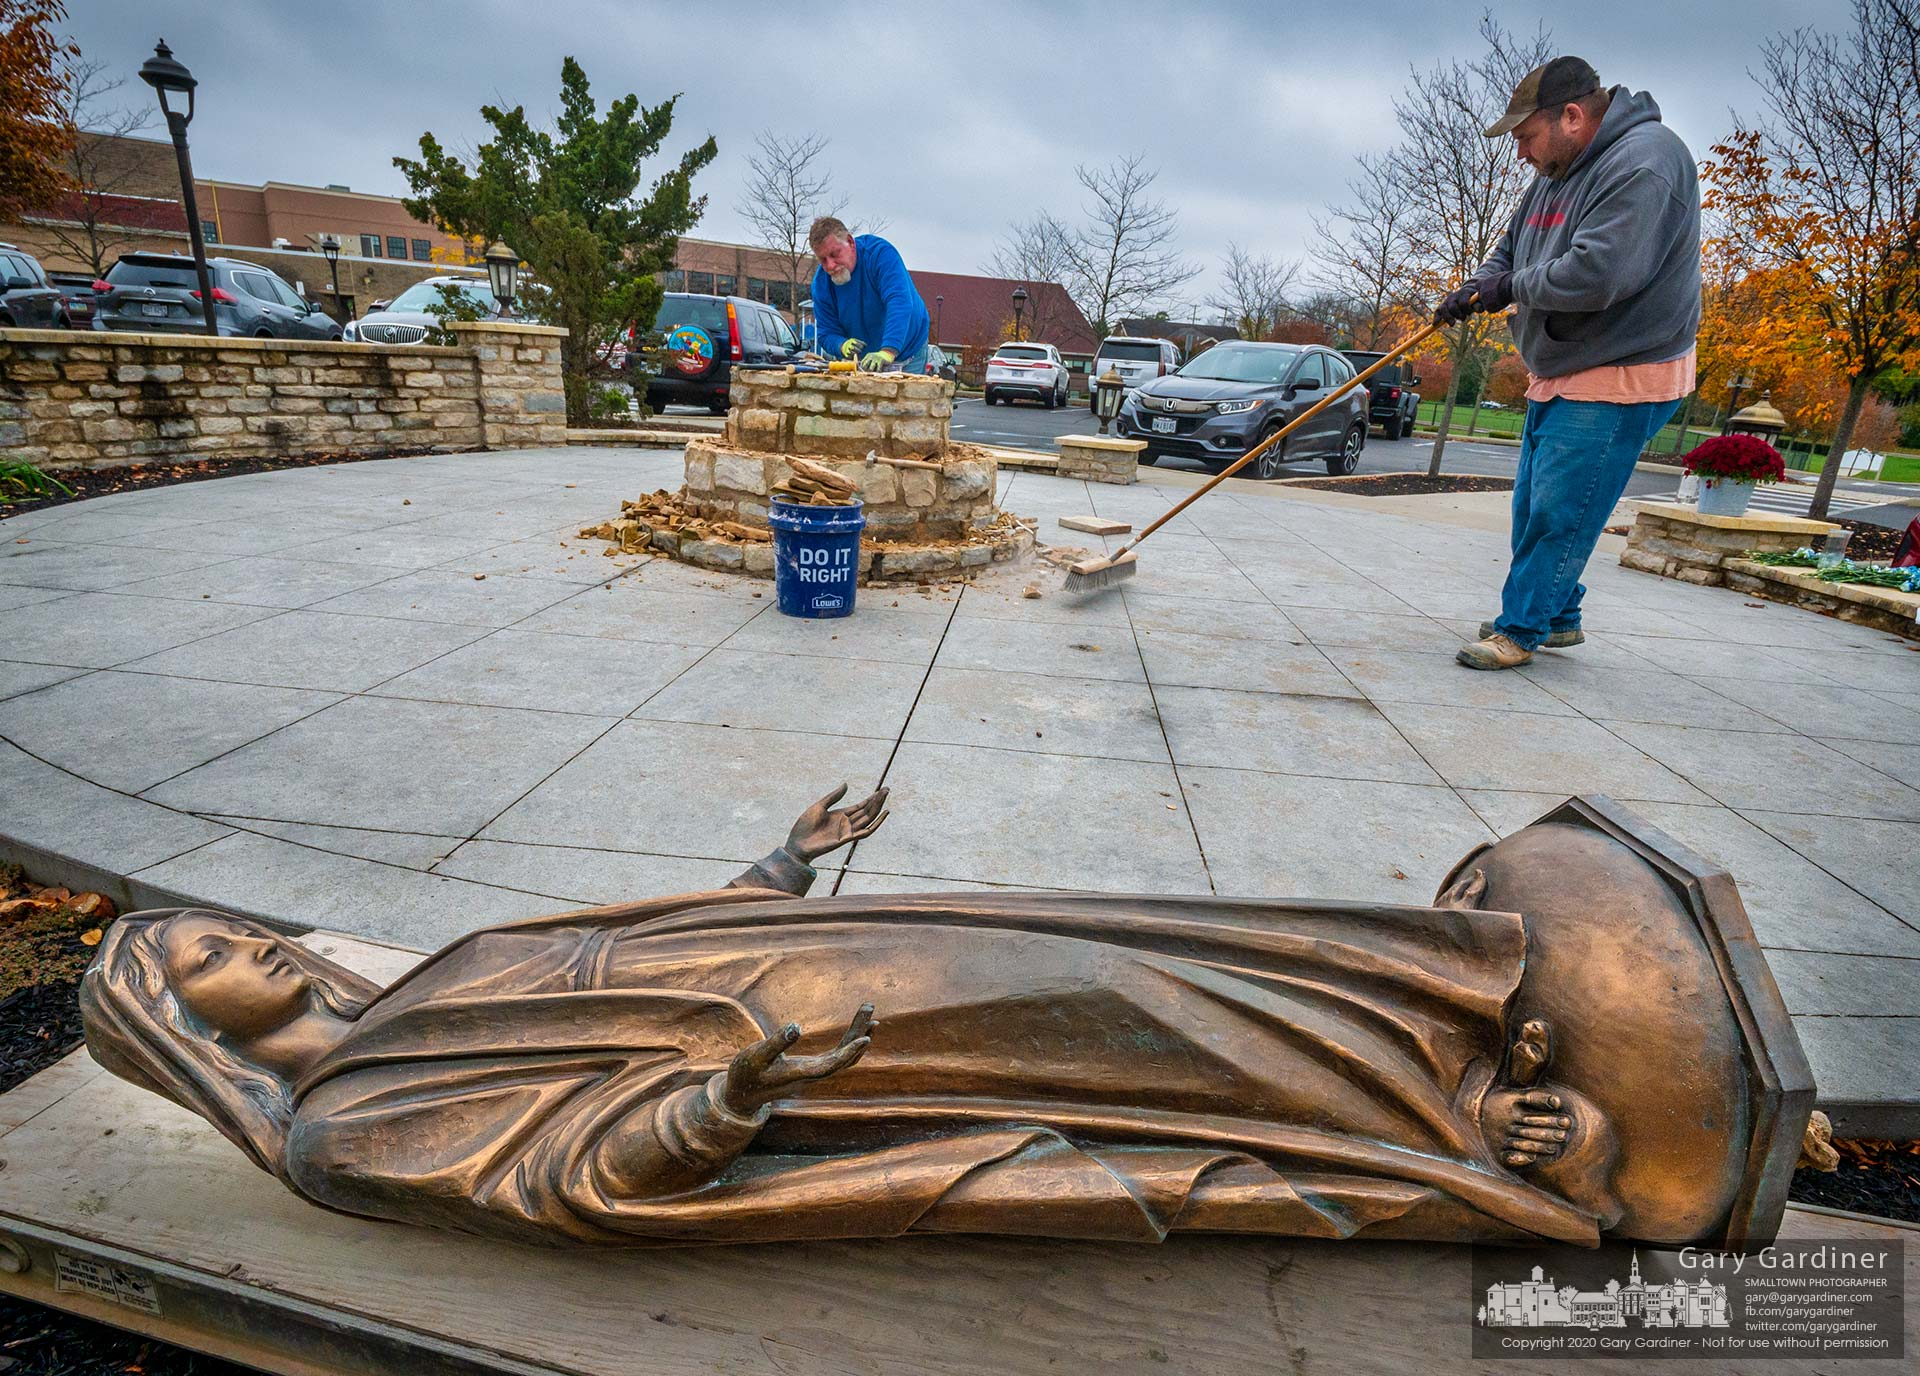 Workers repair the pedestal for the St. Paul the Apostle Catholic Church statue of Mary as it lies on its back ad the edge of a shrine at the Westerville church. My Final Photo for Oct. 27, 2020.